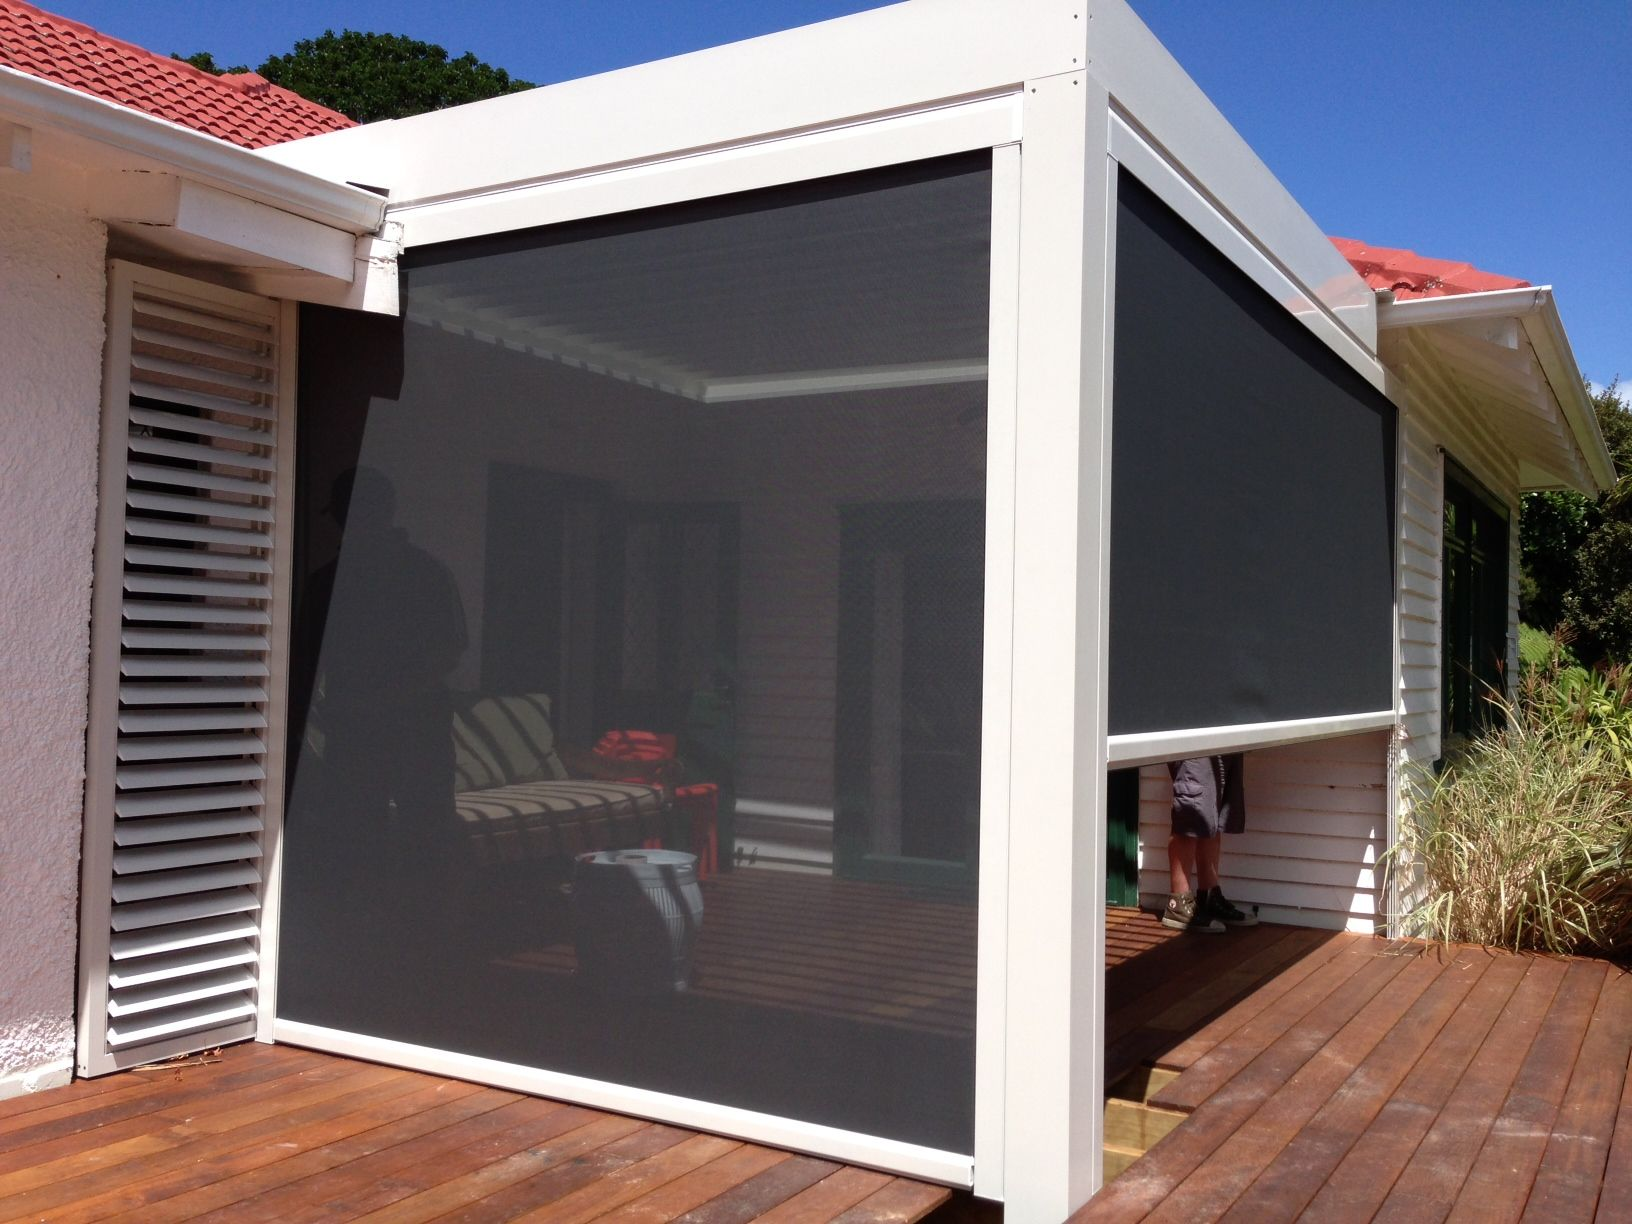 PVC Screens And Mesh Shade Blinds   Louvretec, Cafe Style Blinds. Outdoor  BlindsOutdoor RoomsOutdoor FurniturePorch ...